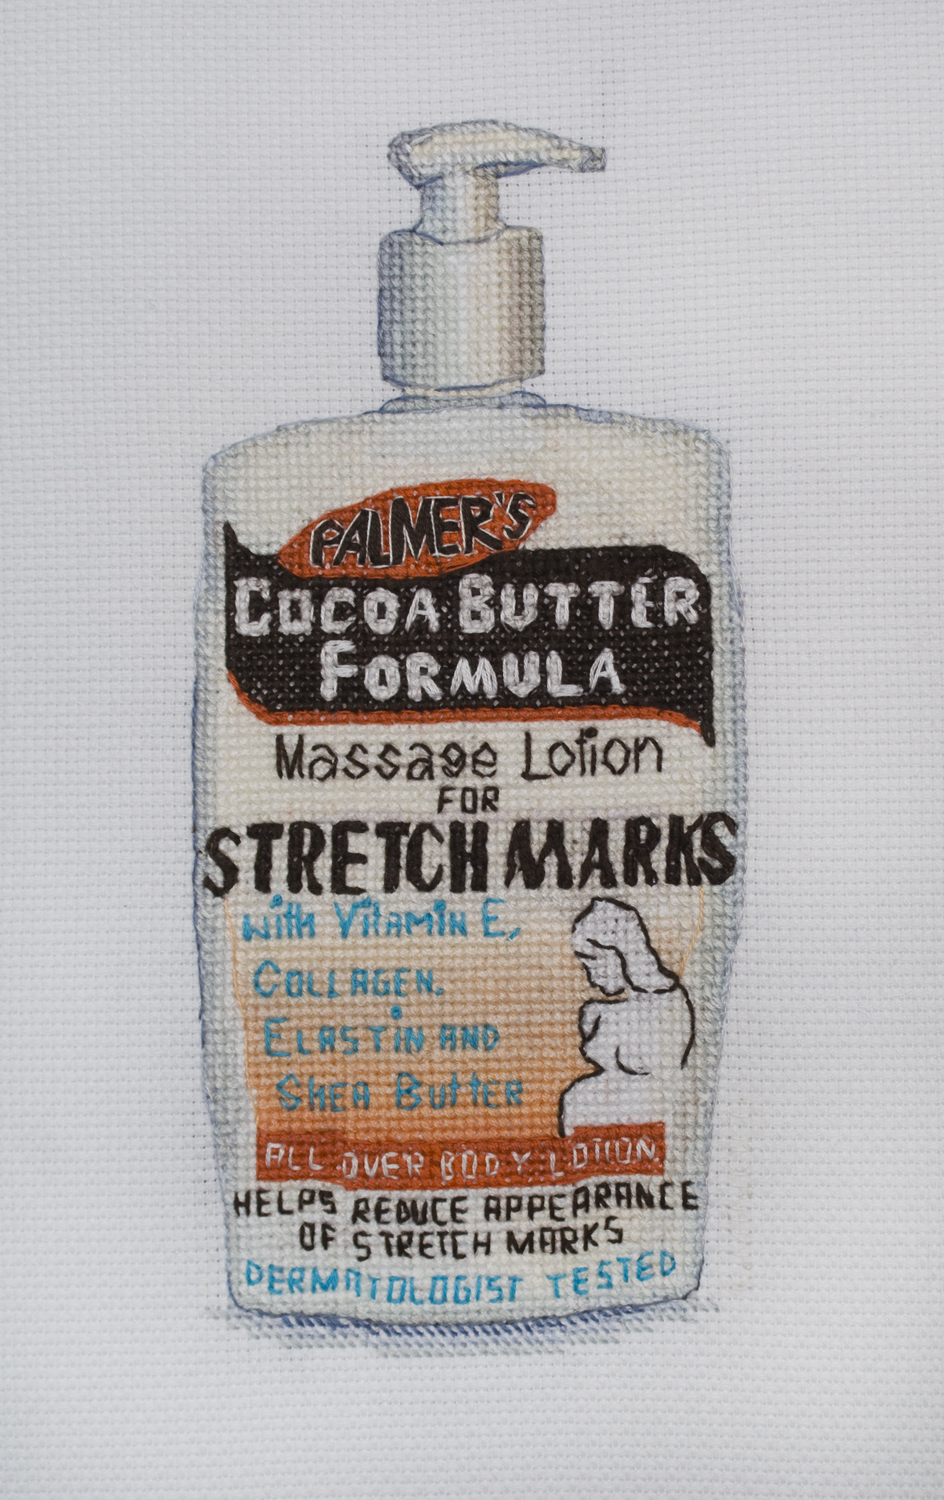 Stretch Marks Lotion, Thread on aida cloth, 14 x 11 inches, 2018, by Katrin Majkut